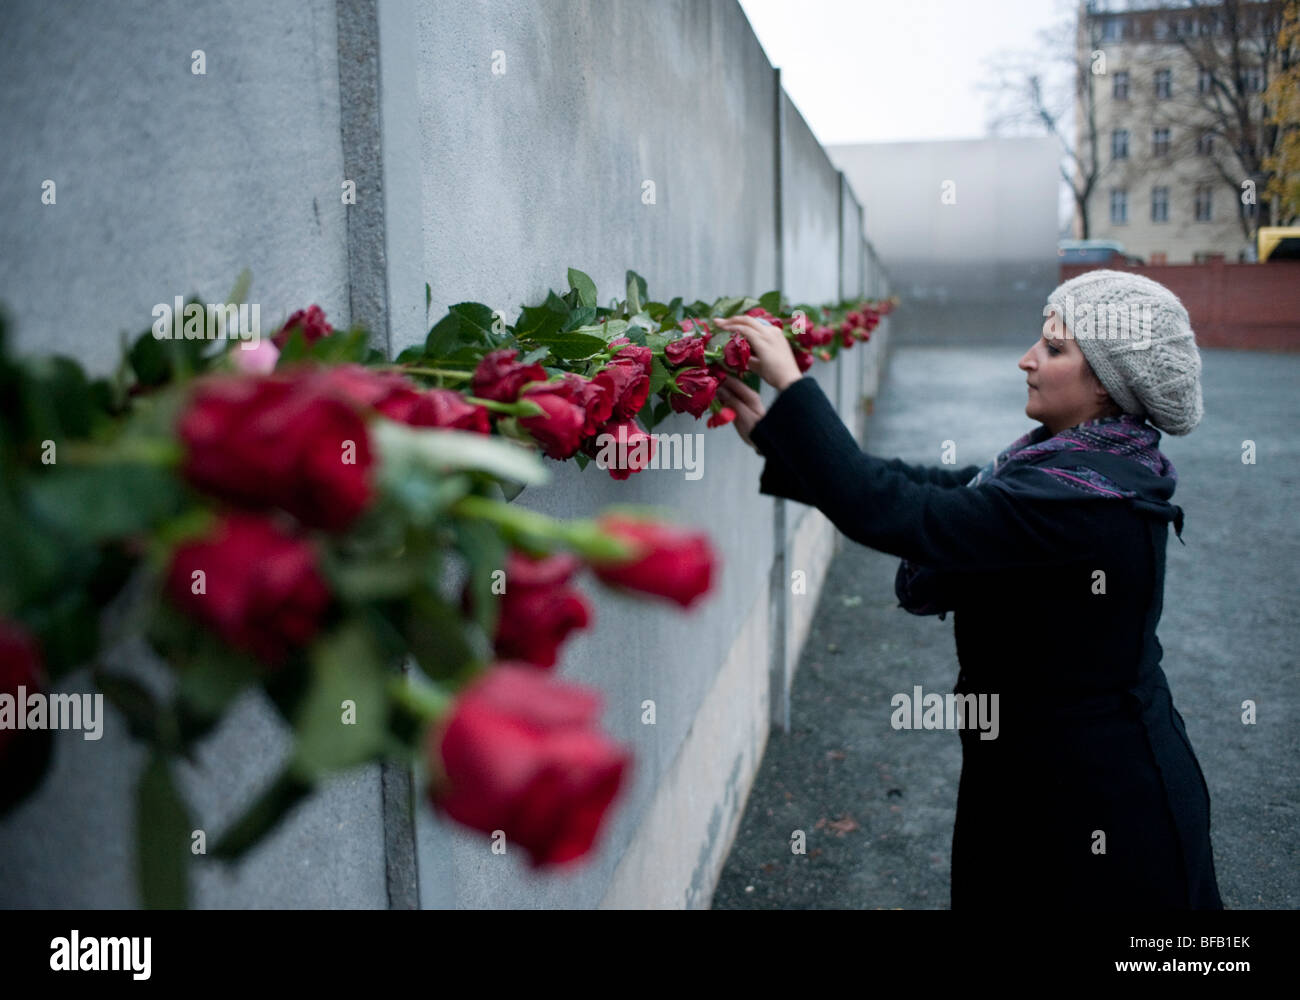 Woman placing red rose in Berlin Wall on 20th anniversary of the fall of the wall to commemorate those who died - Stock Image